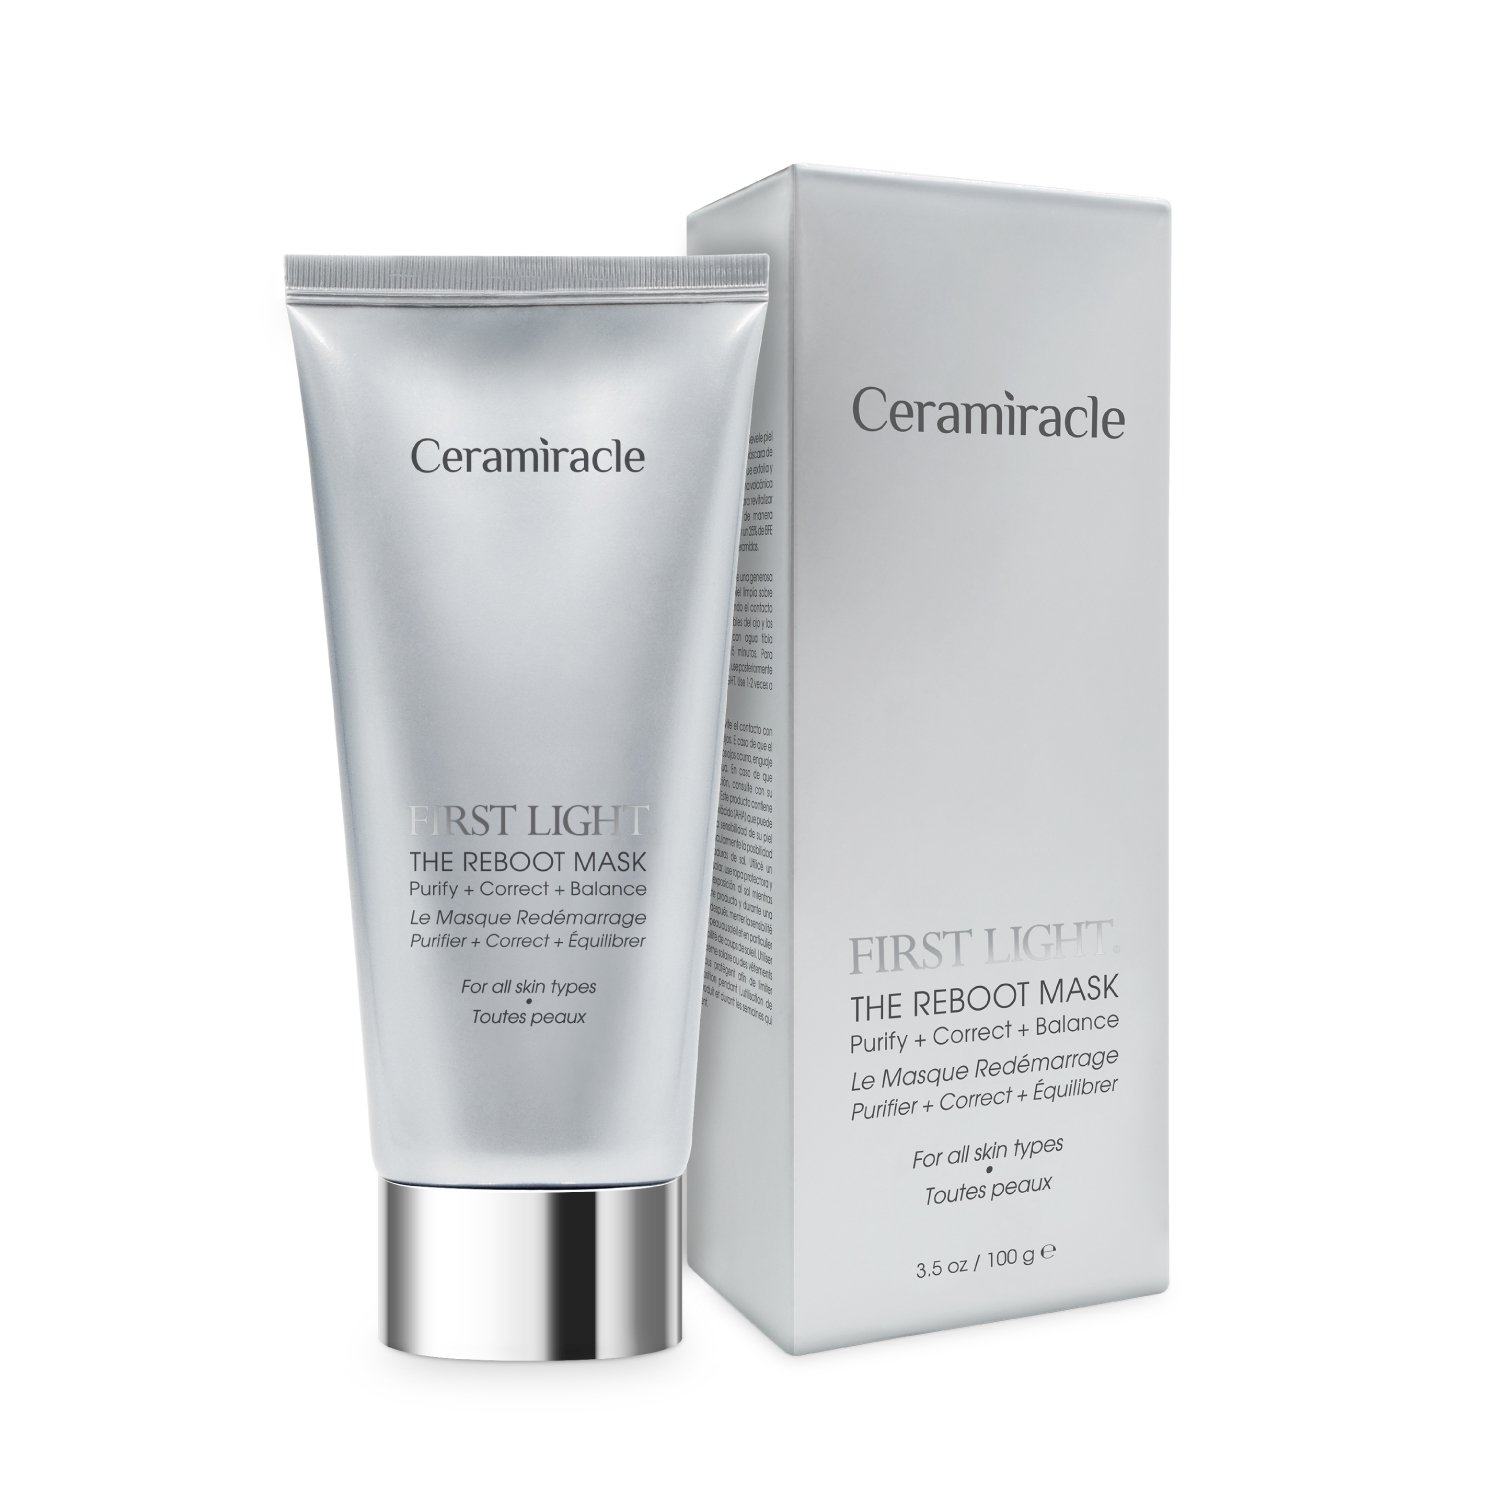 Ceramiracle First Light The Reboot Mask | Gently Revitalizes, Purifies, and Exfoliates | BioFerment Essence, Organic Rice Ferment, Mugwort, Ginseng, Black Volcanic Sand | 3.5 oz